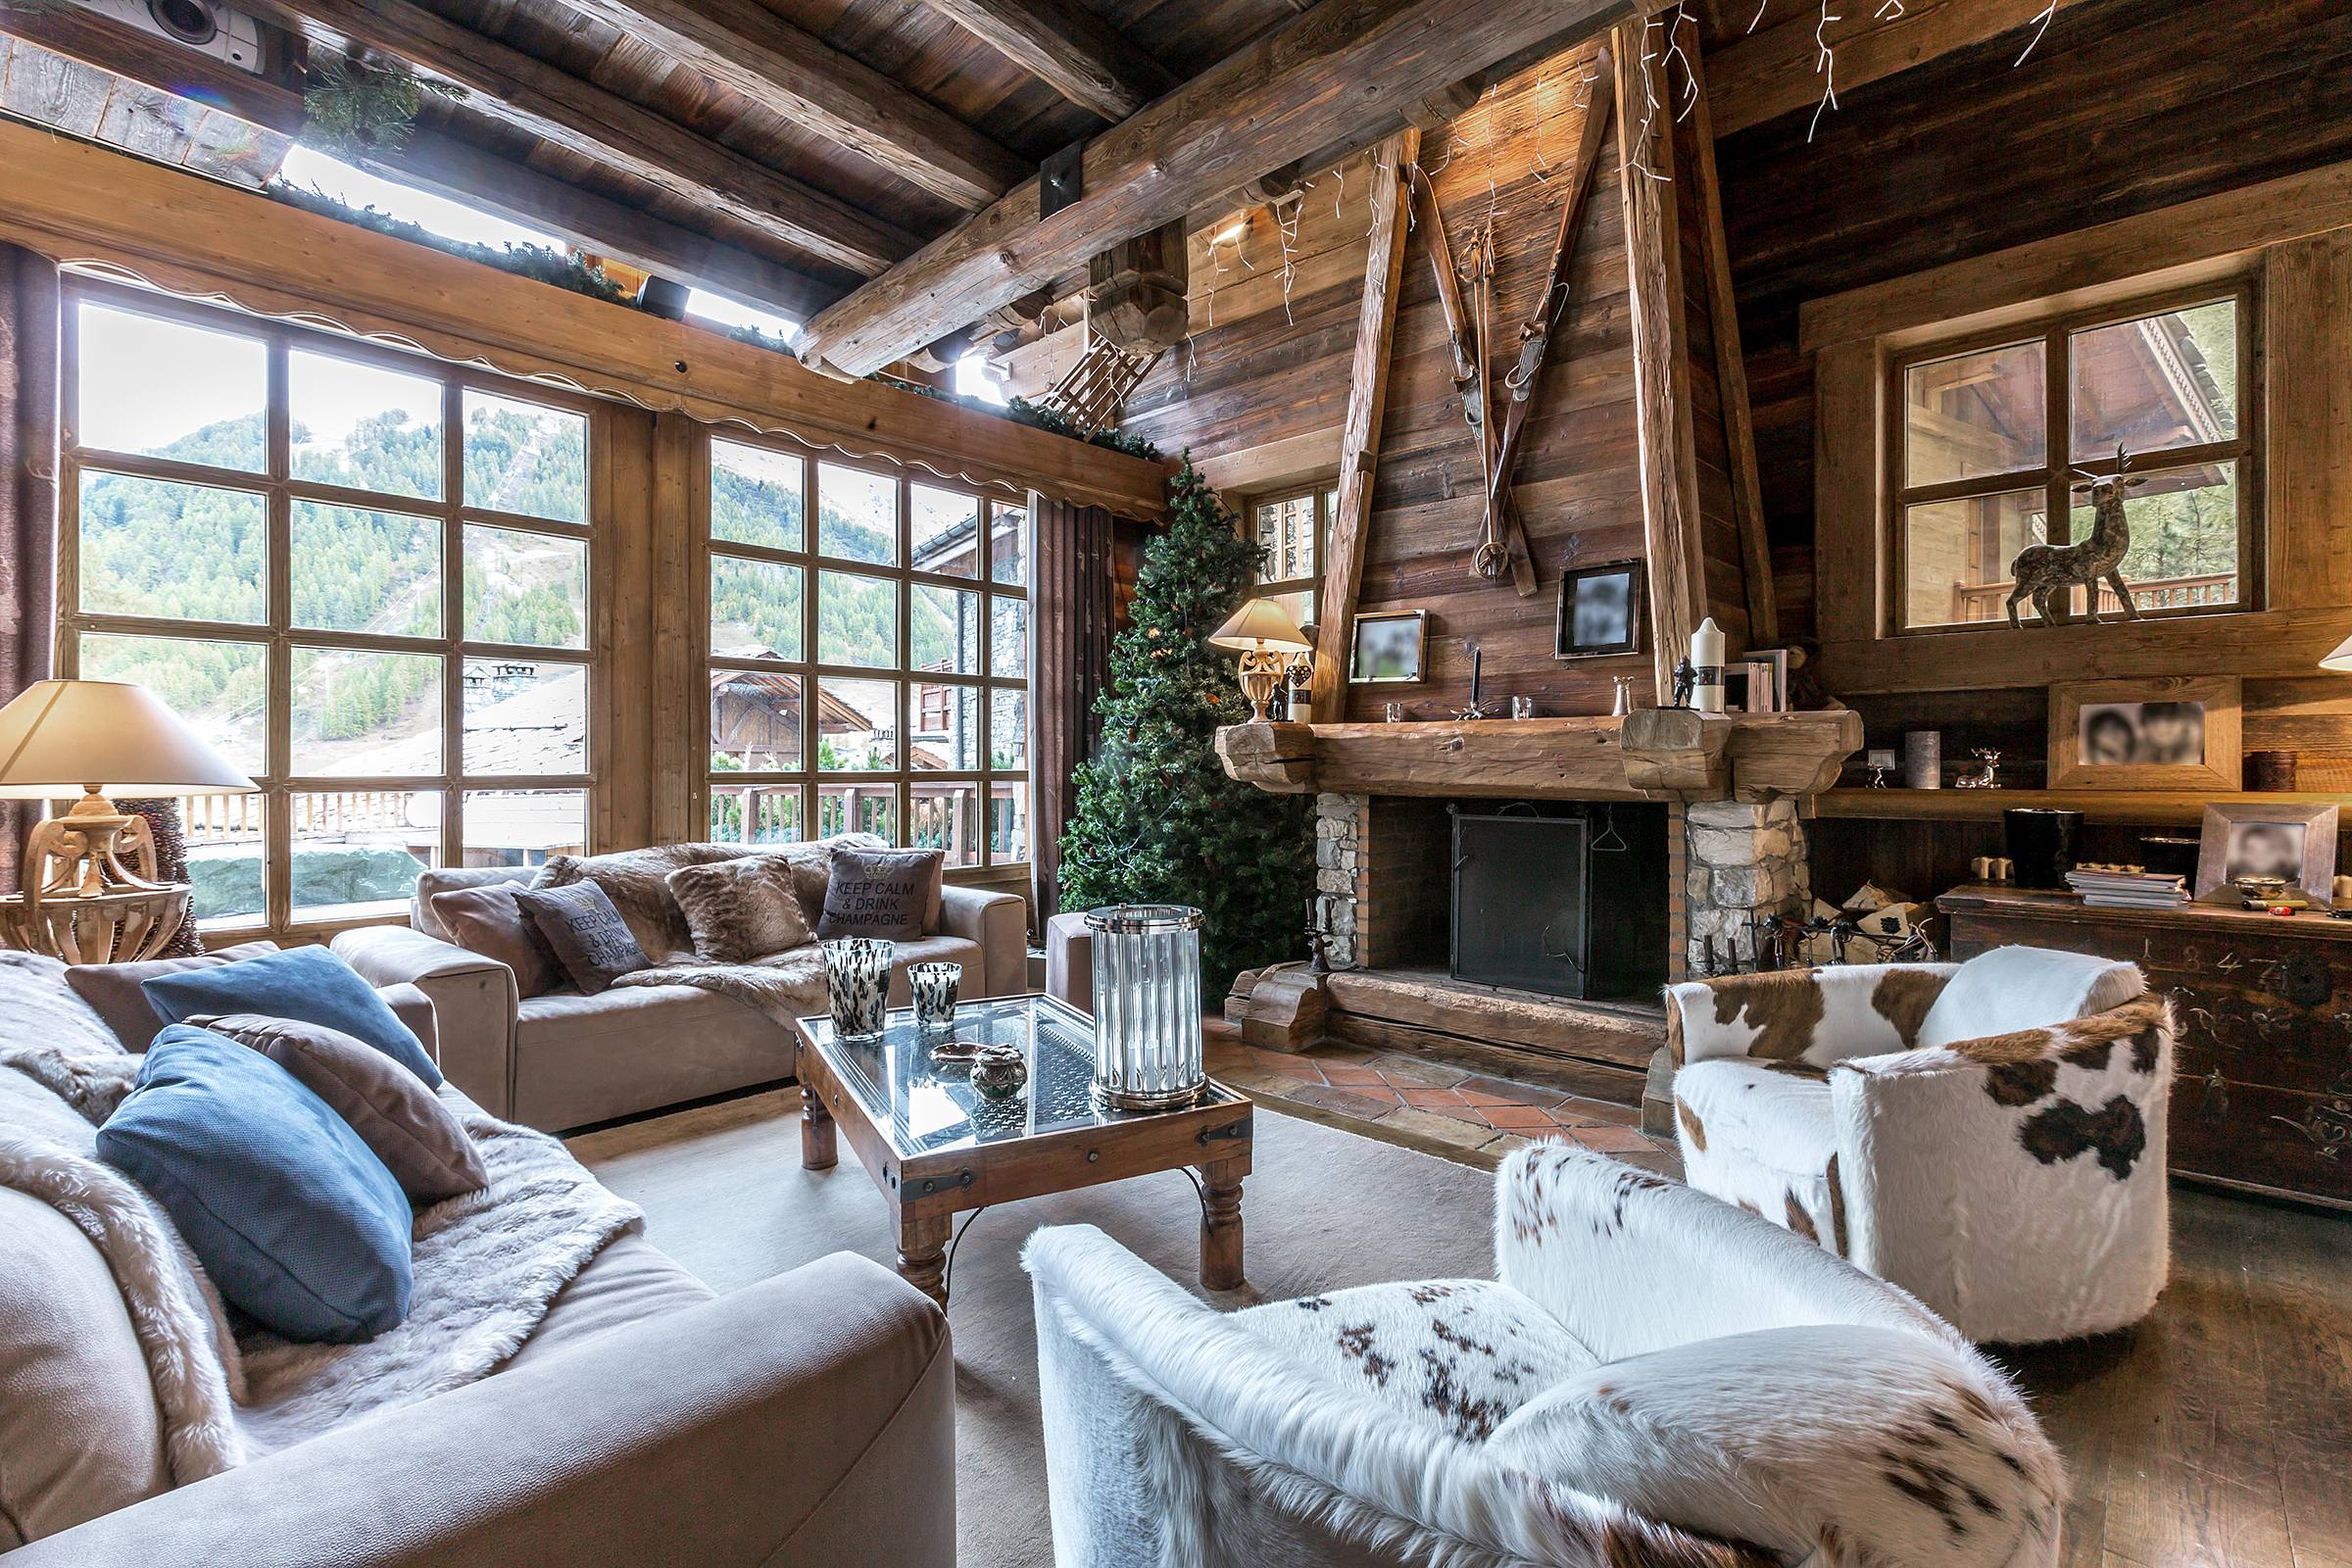 Decorating a mountain chalet